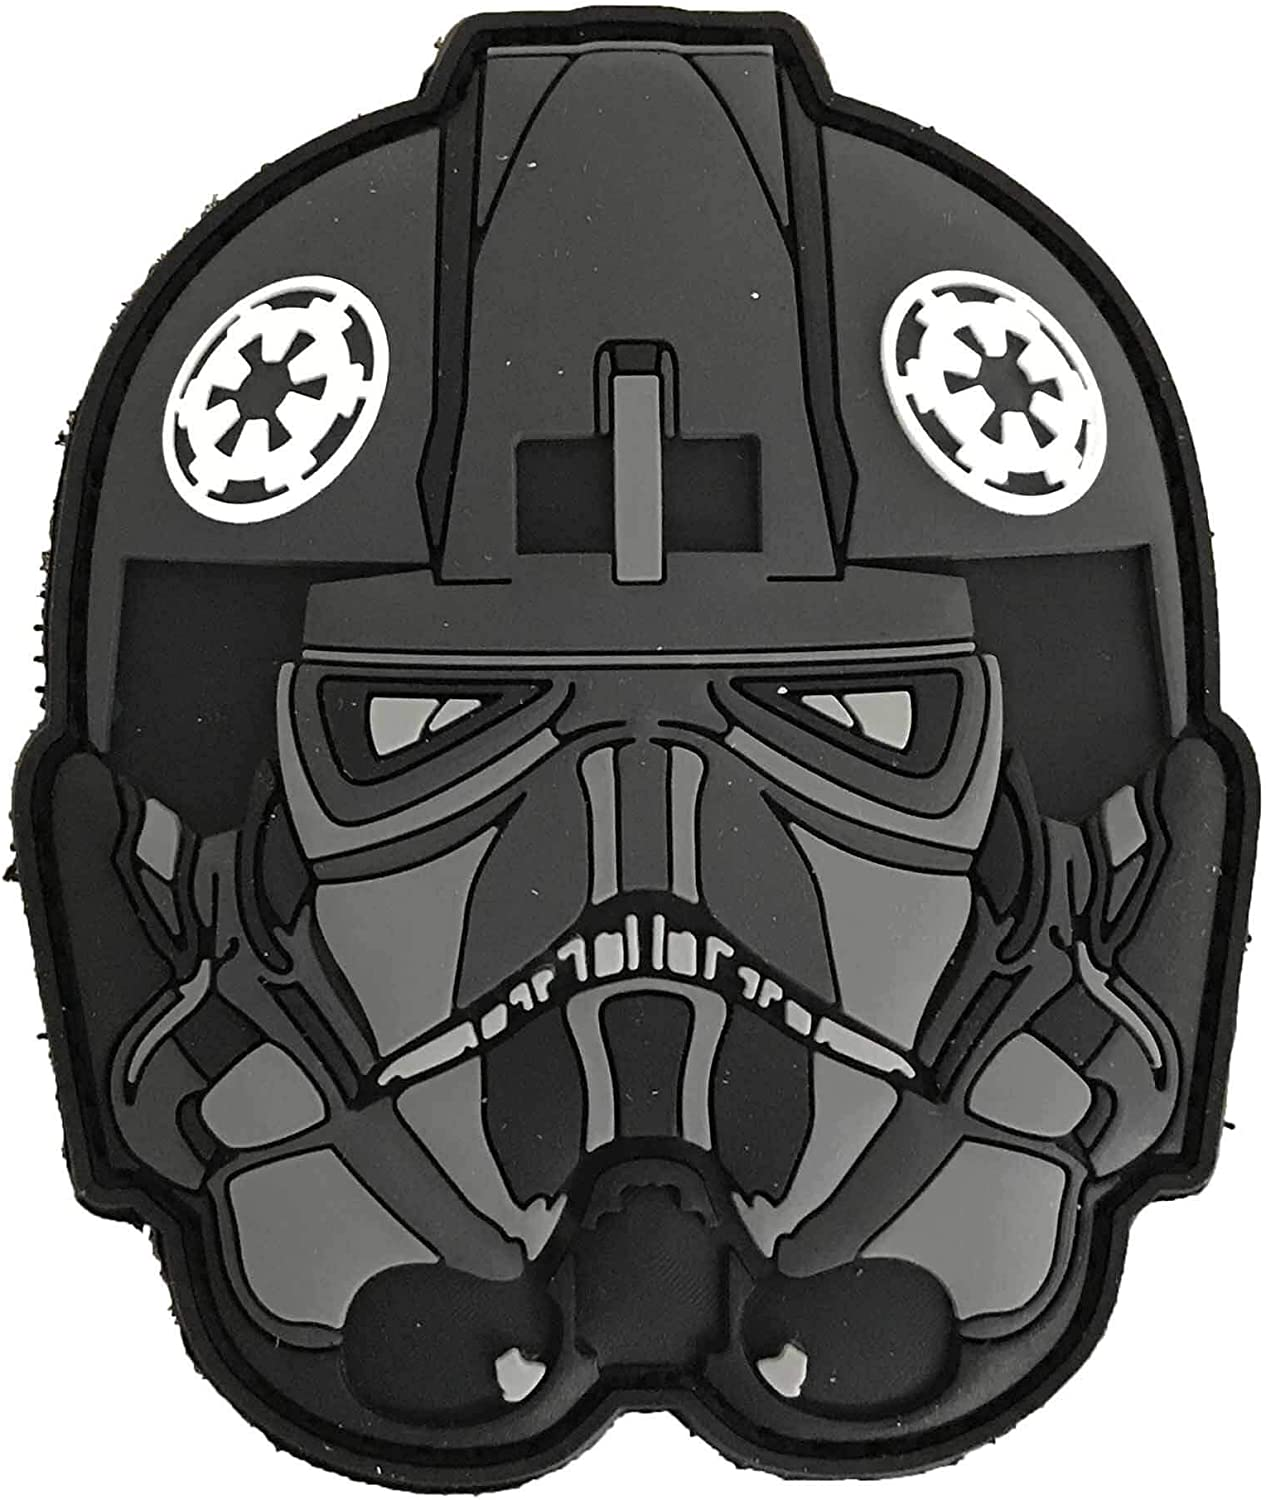 Star Wars Imperial Pilot Patch en PVC pour Casque